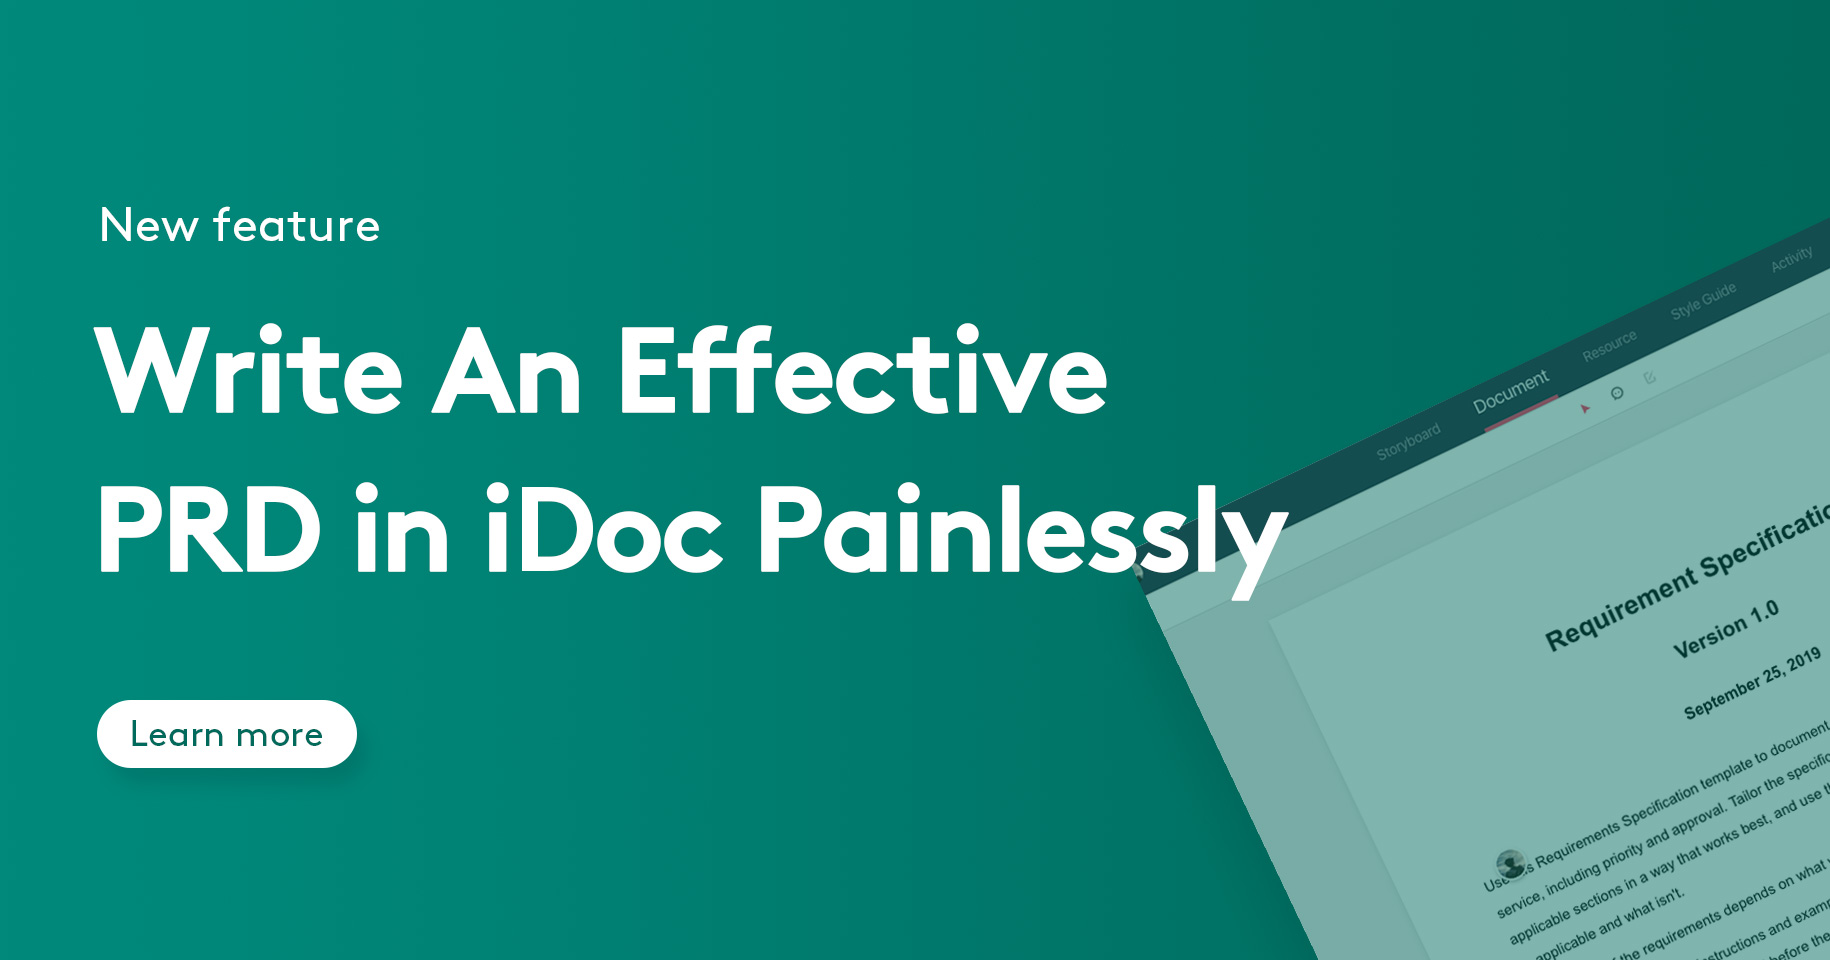 Write An Effective PRD in iDoc Painlessly